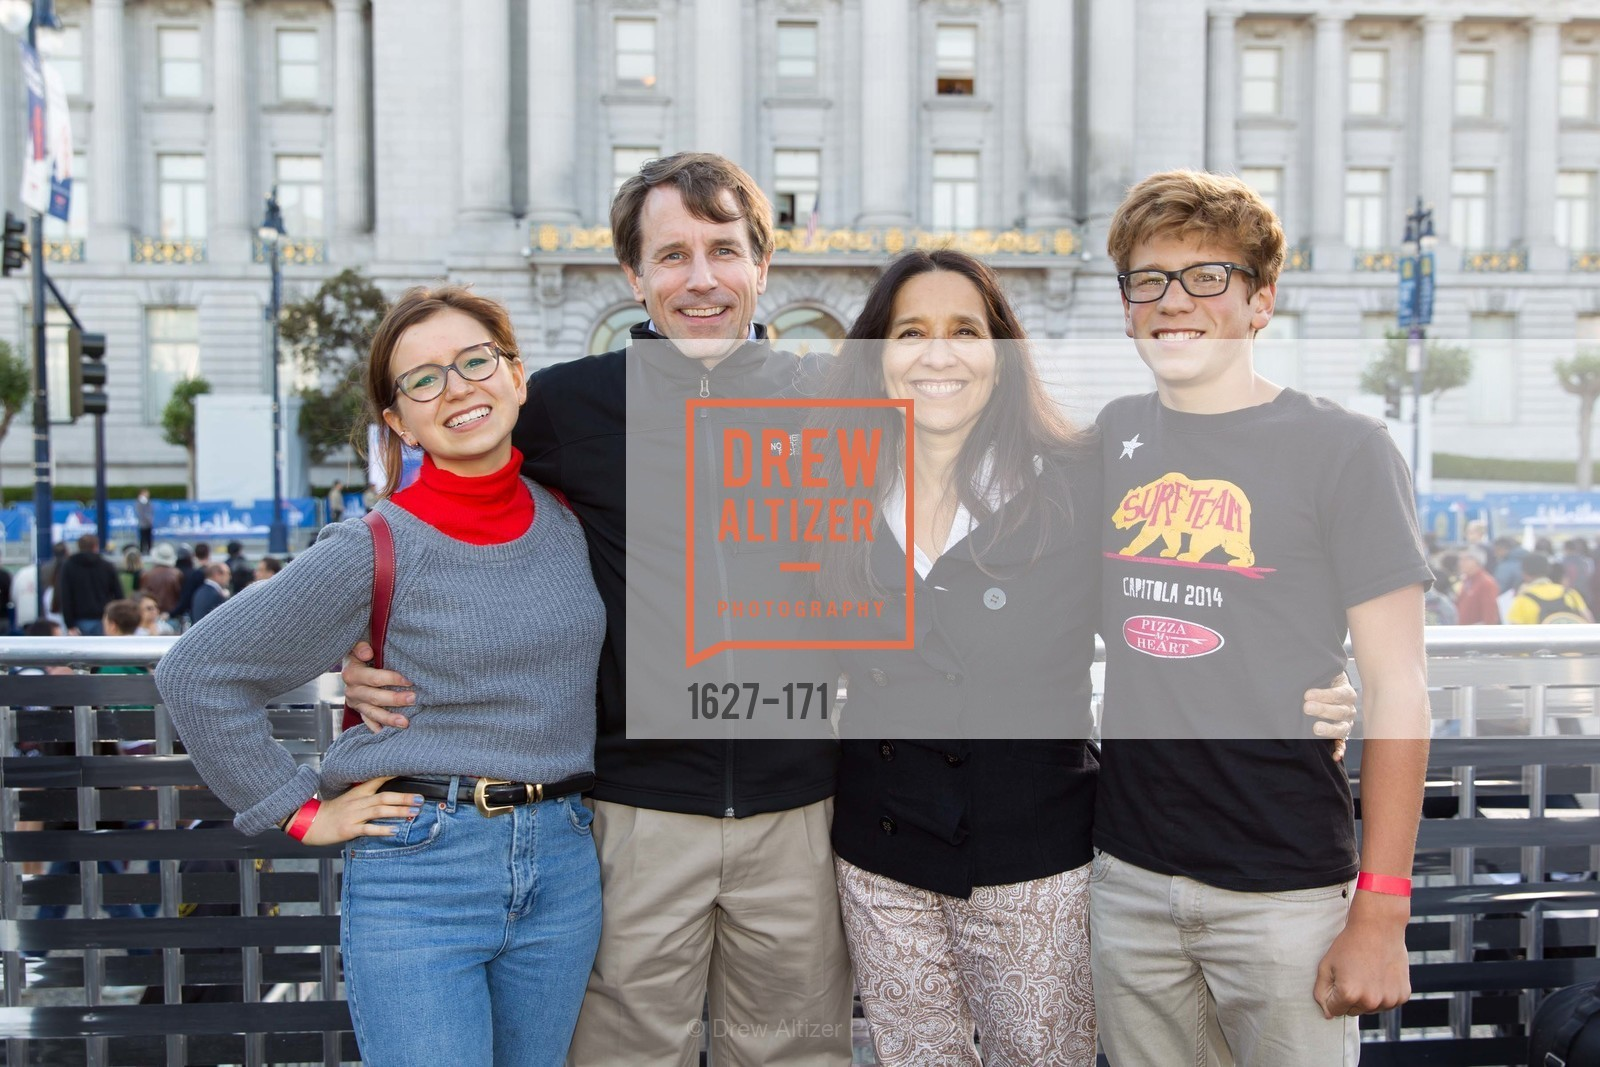 Isa Flores Jones, Dave Jones, Kim Flores, Will Flores Jones, San Francisco City Hall Centennial Celebration, Civic Center Plaza, June 18th, 2015,Drew Altizer, Drew Altizer Photography, full-service agency, private events, San Francisco photographer, photographer california